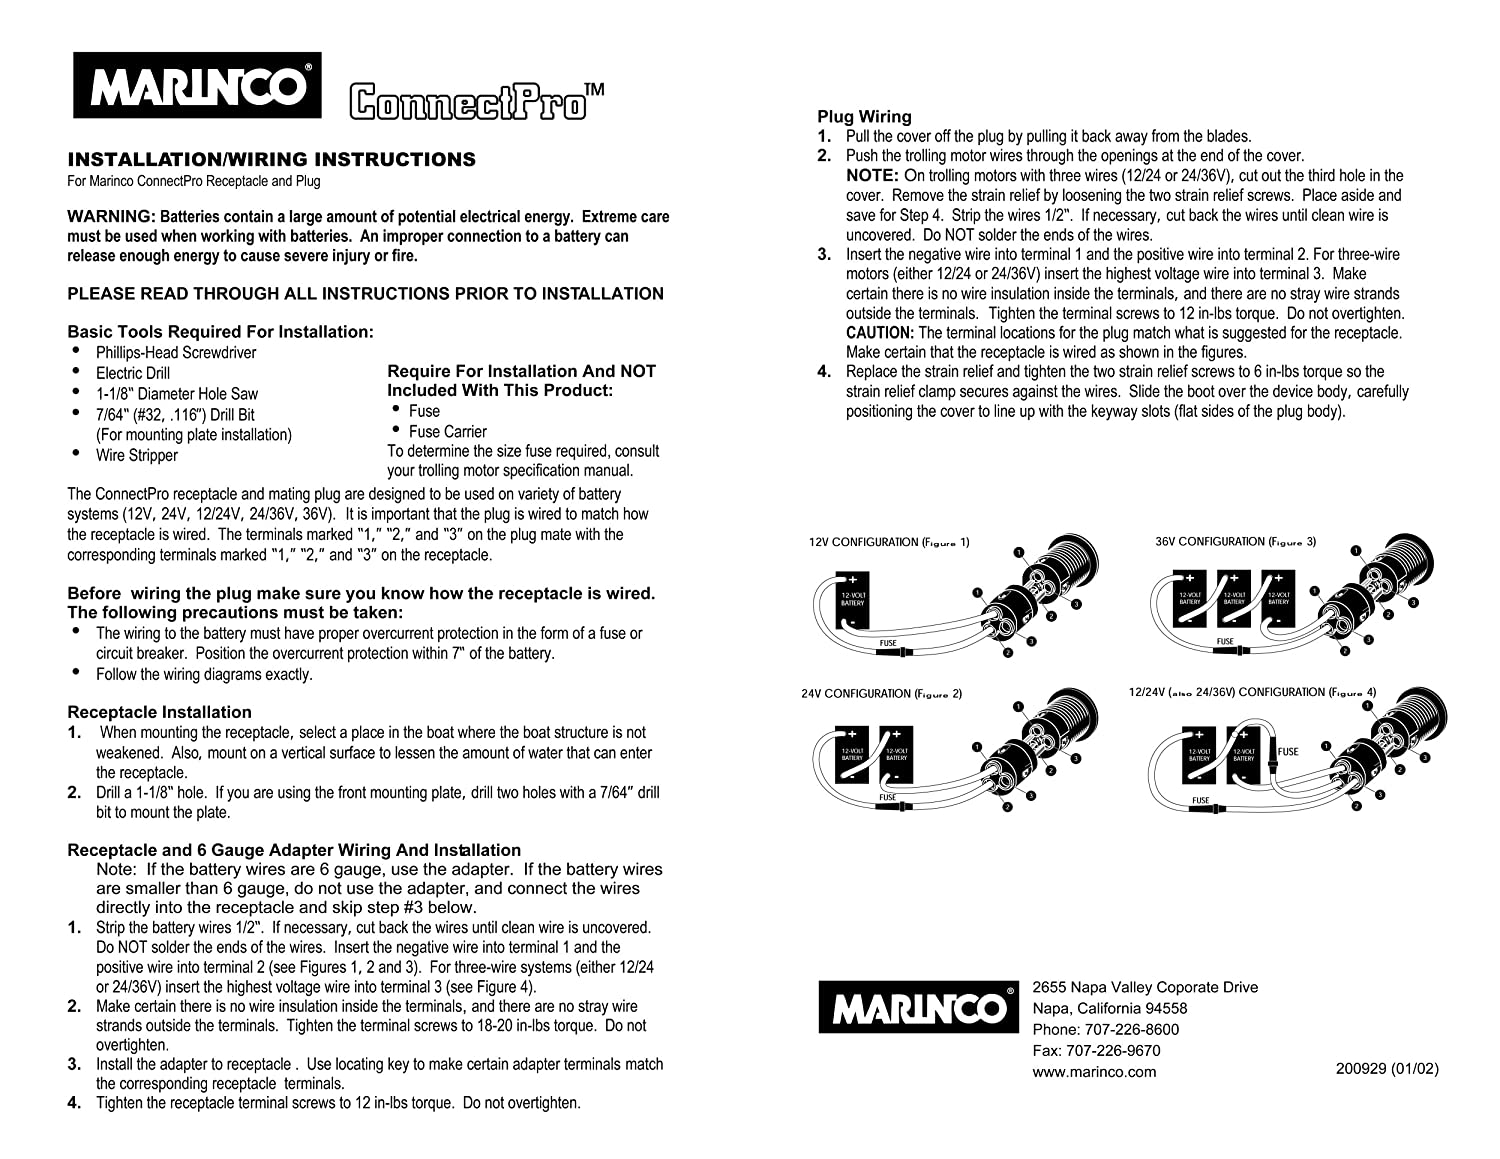 91ULQH2Yk6S._SL1500_ amazon com marinco 2 wire connectpro plug sports & outdoors marinco plug wiring diagram at bayanpartner.co